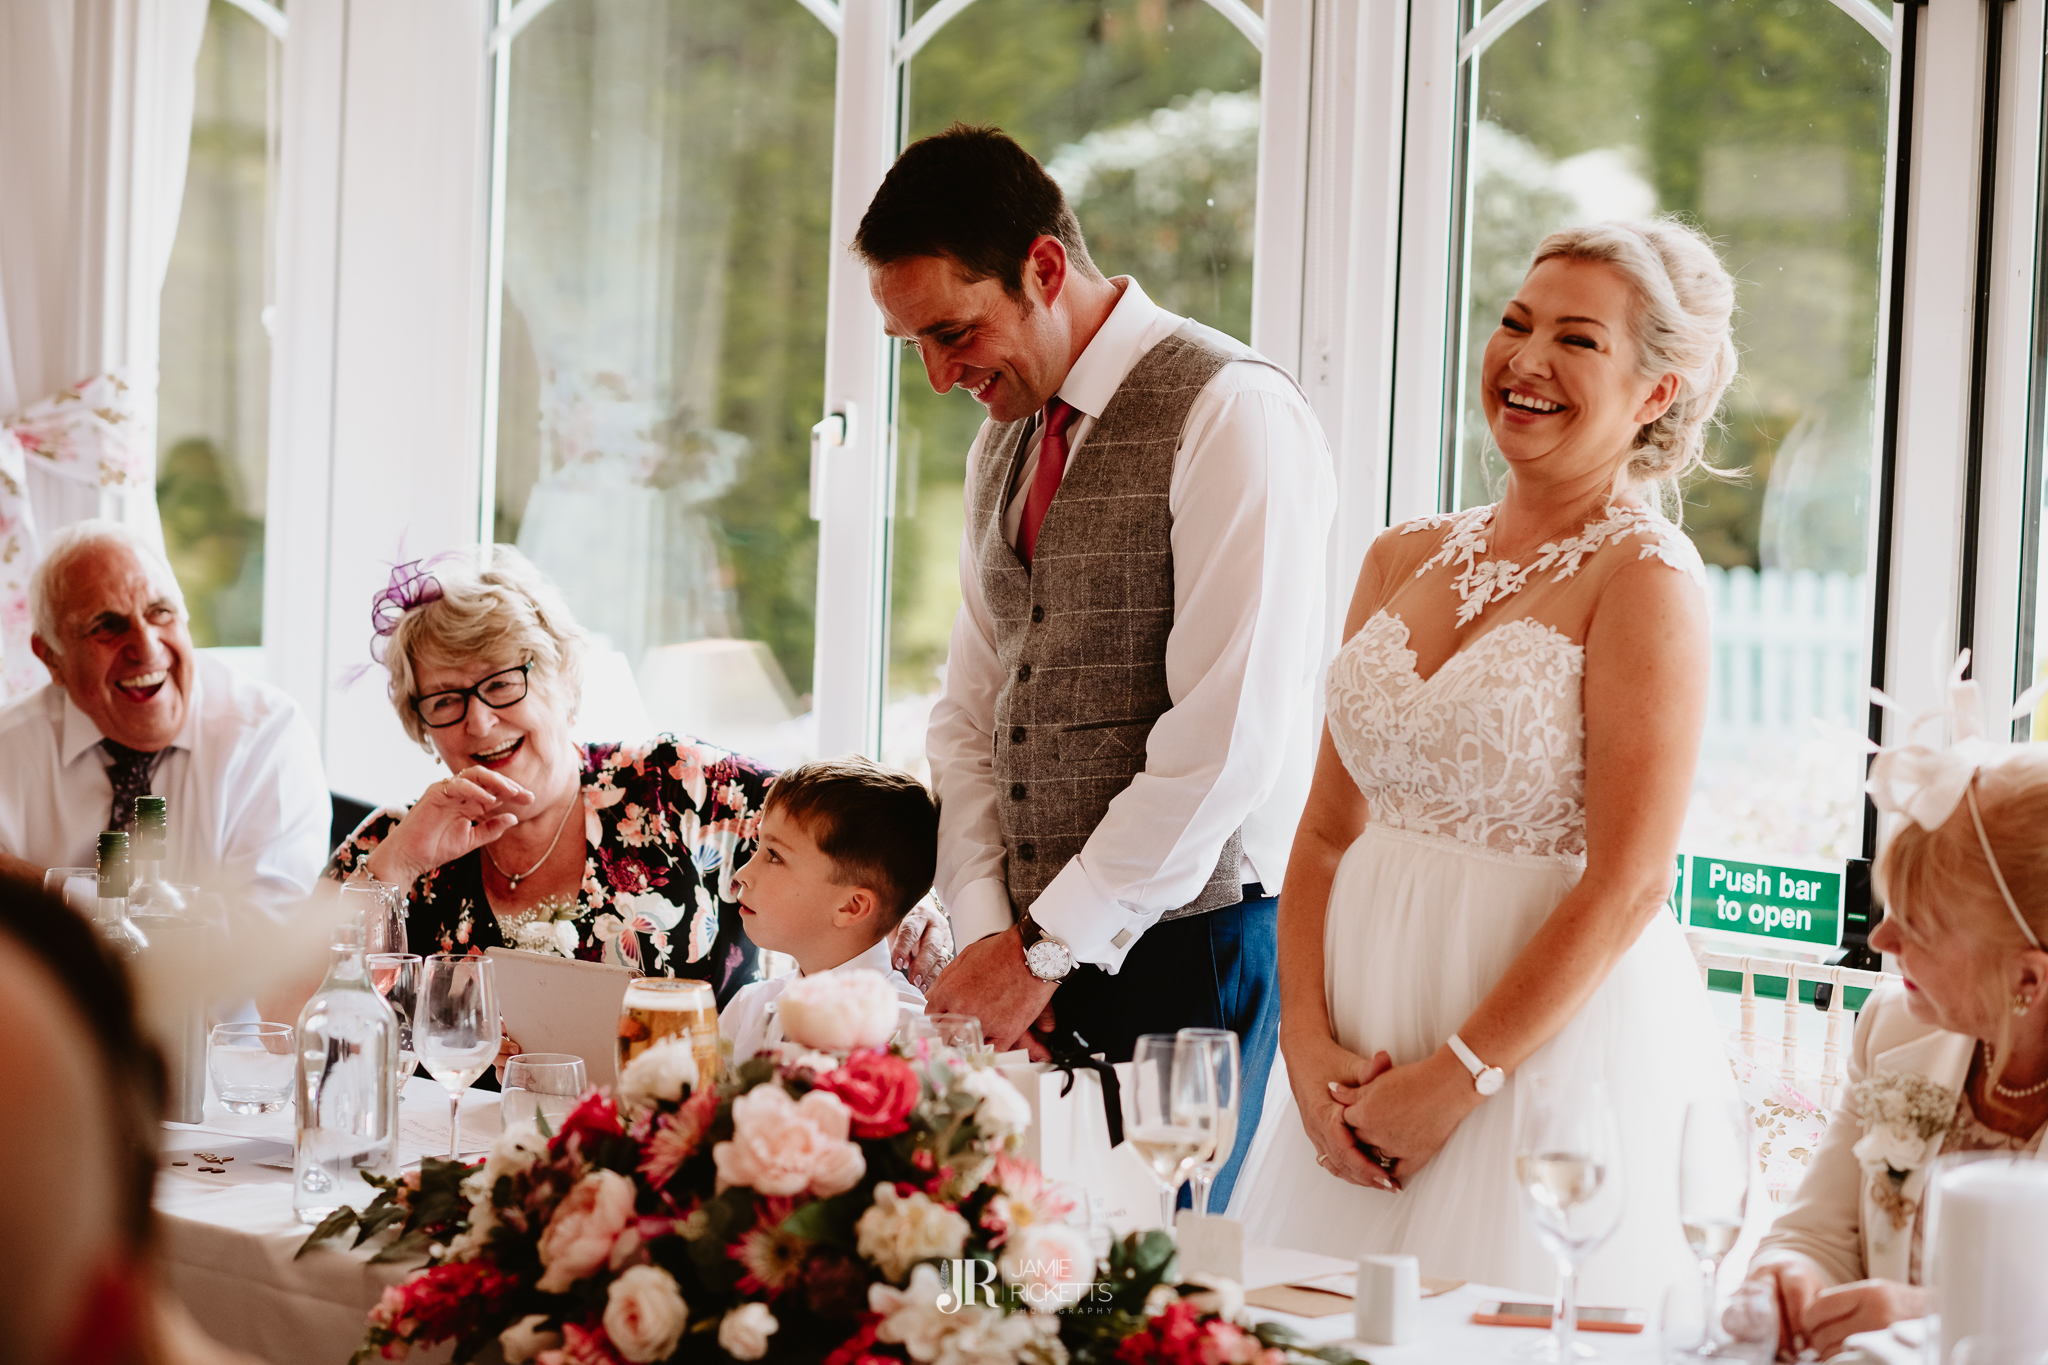 Wroxeter-Hotel-Wedding-Photography-In-Shropshire-By-Shropshire-Wedding-Photographer-Jamie-Ricketts-181.JPG